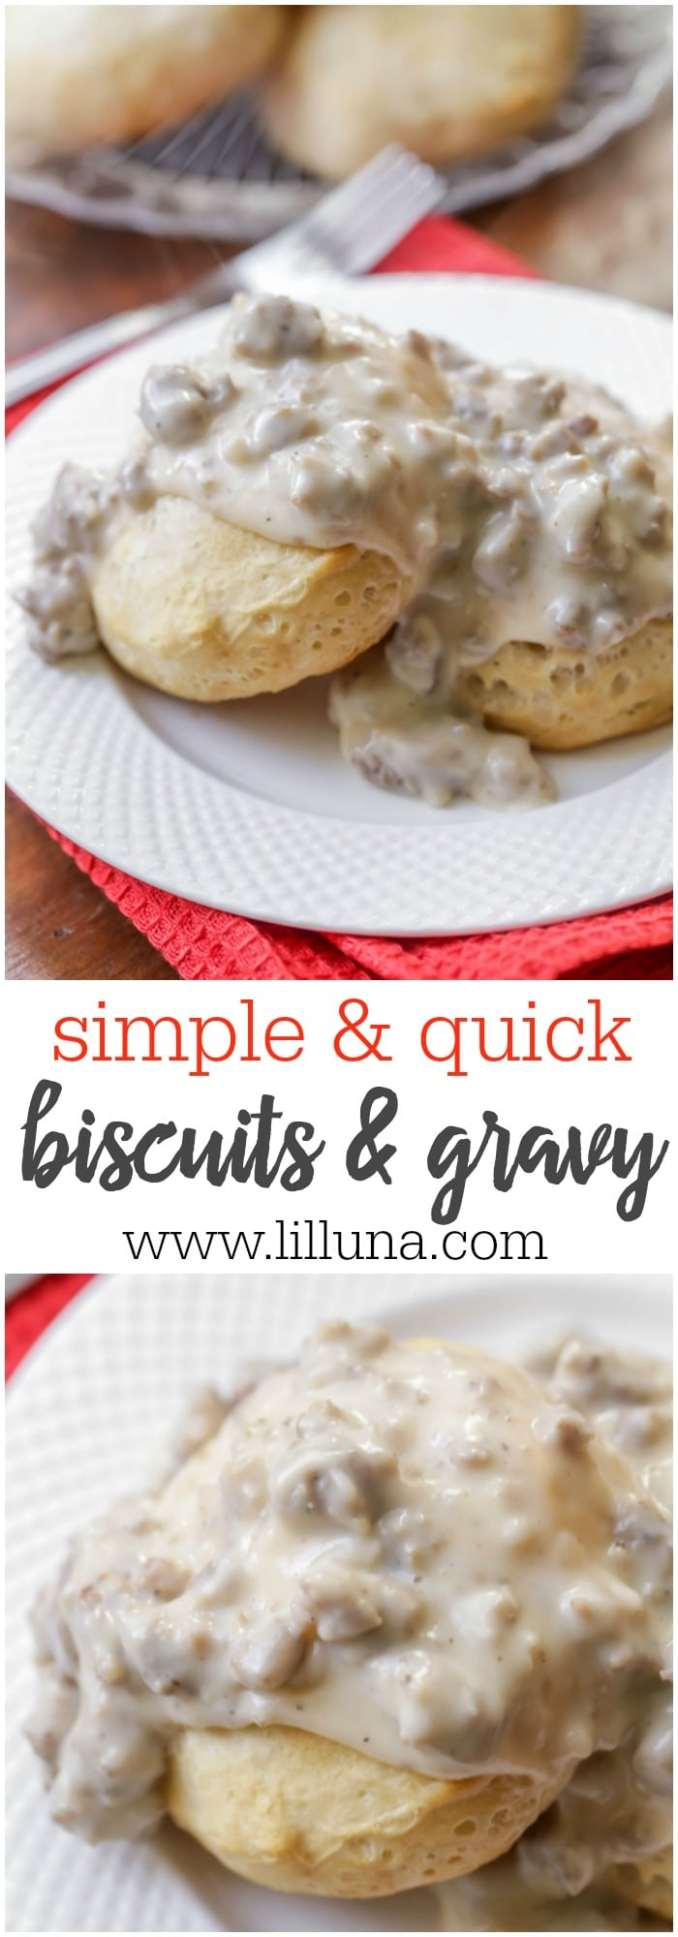 Easy Biscuits and Gravy Recipe (+VIDEO) | Lil' Luna